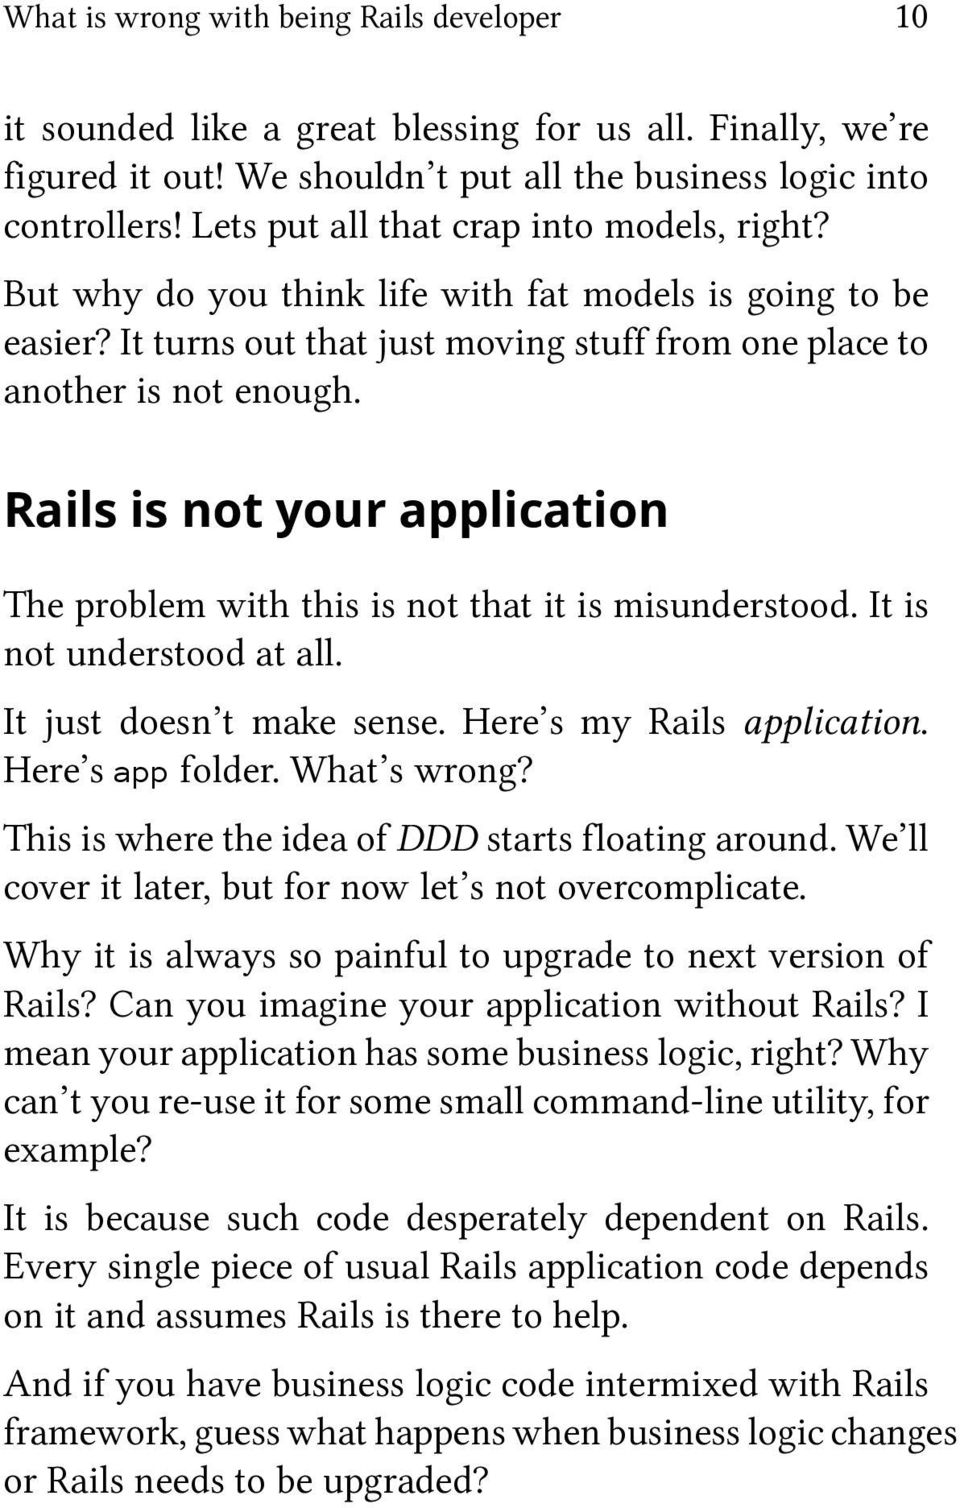 Rails is not your application The problem with this is not that it is misunderstood. It is not understood at all. It just doesn t make sense. Here s my Rails application. Here s app folder.